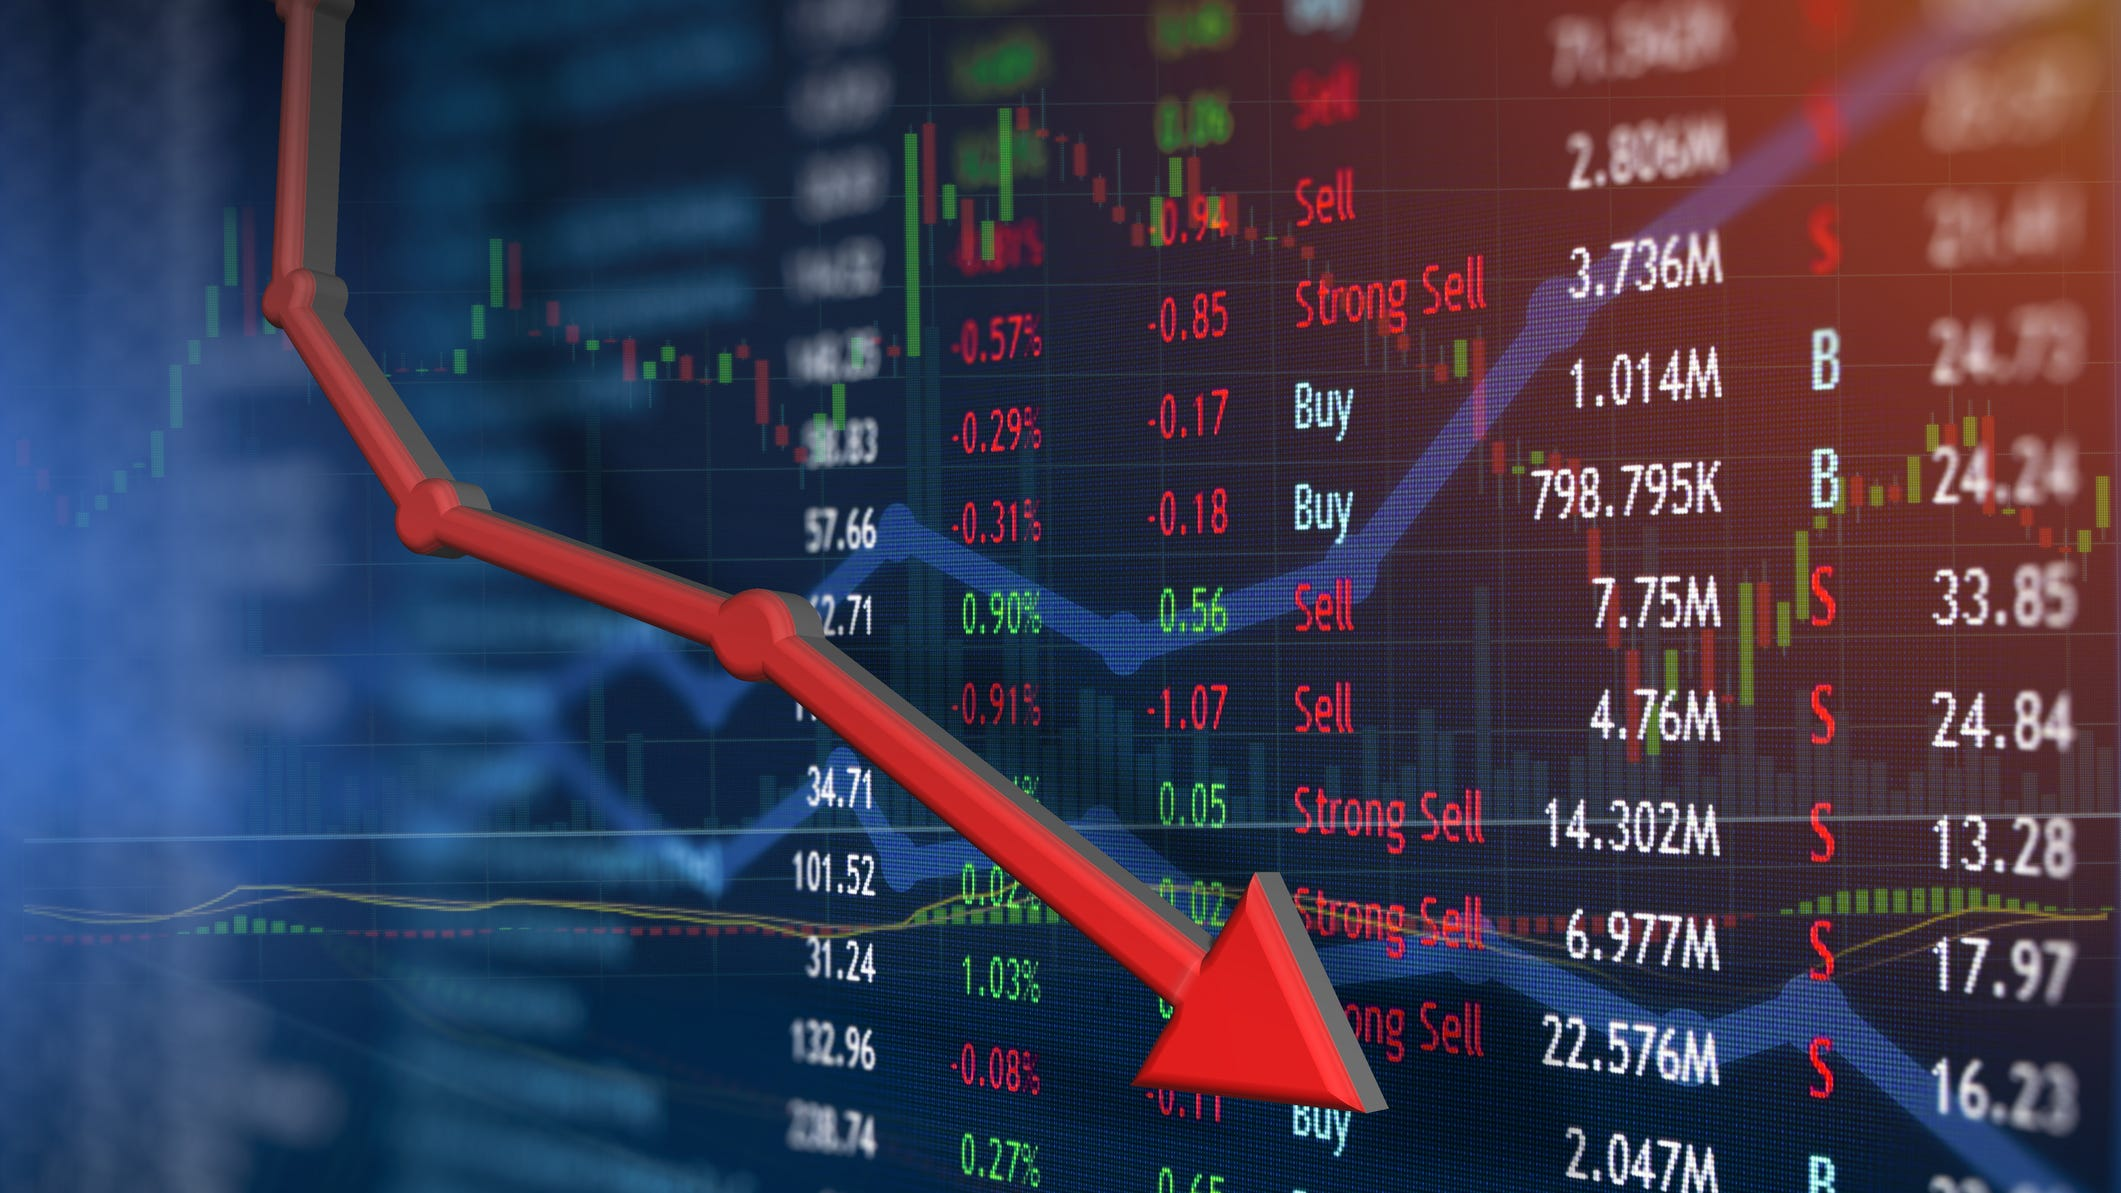 Dow Jones industrial average for today: Why did stocks fall?